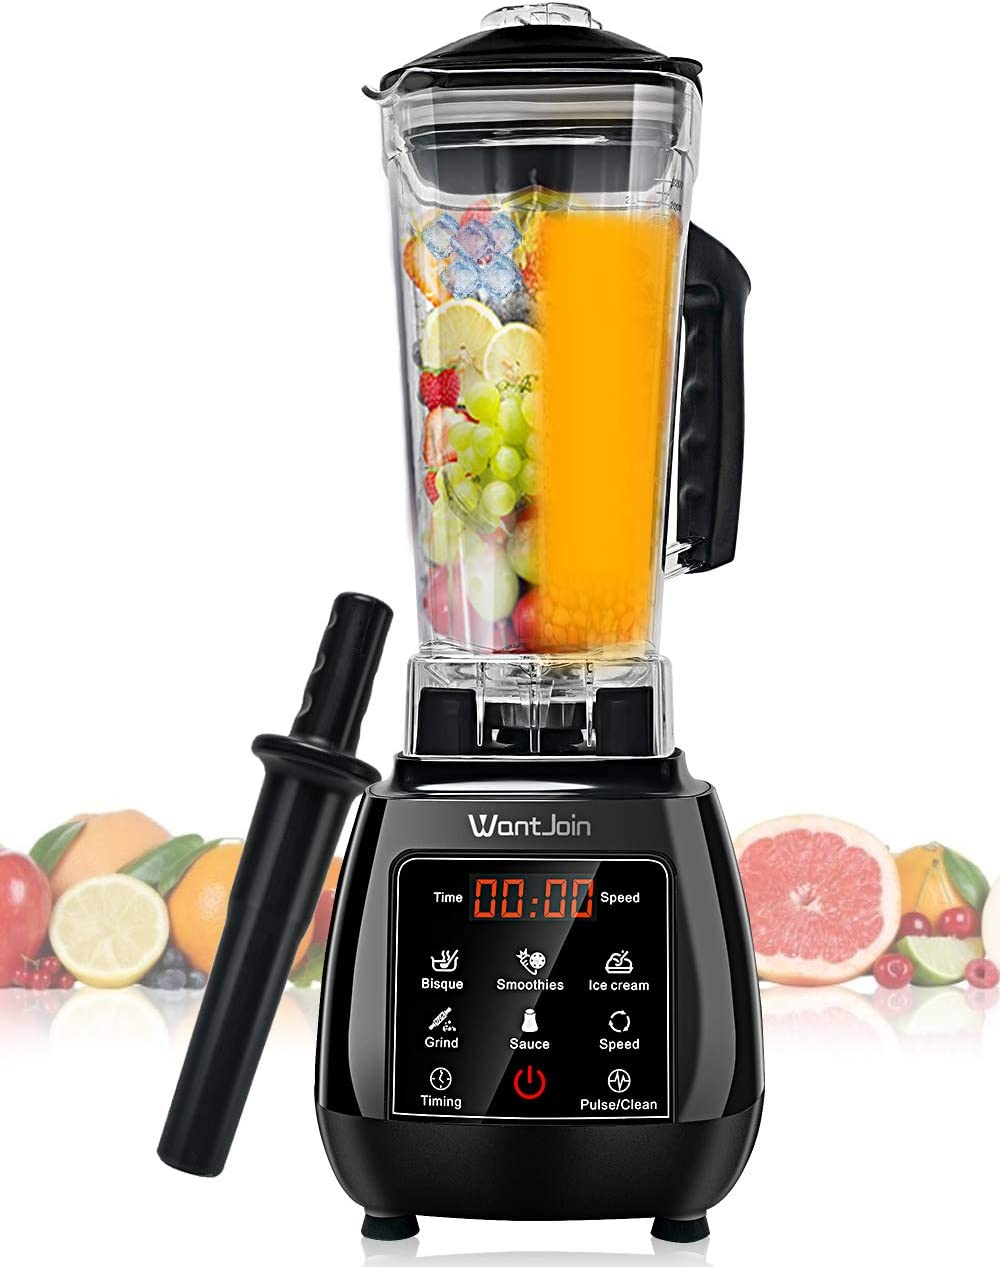 WantJoin Blender for Kitchen Professional Blender Professional Commercial blender Countertop Blender Professional Blender for Shakes, Smoothies,Puree, Bisque,hummus,Anti-drop PC Pitcher Blender with Touch Panel Control, Blender Cold and Hot with 8 Stainless Steel Blades, Professional-Grade Power (RED)